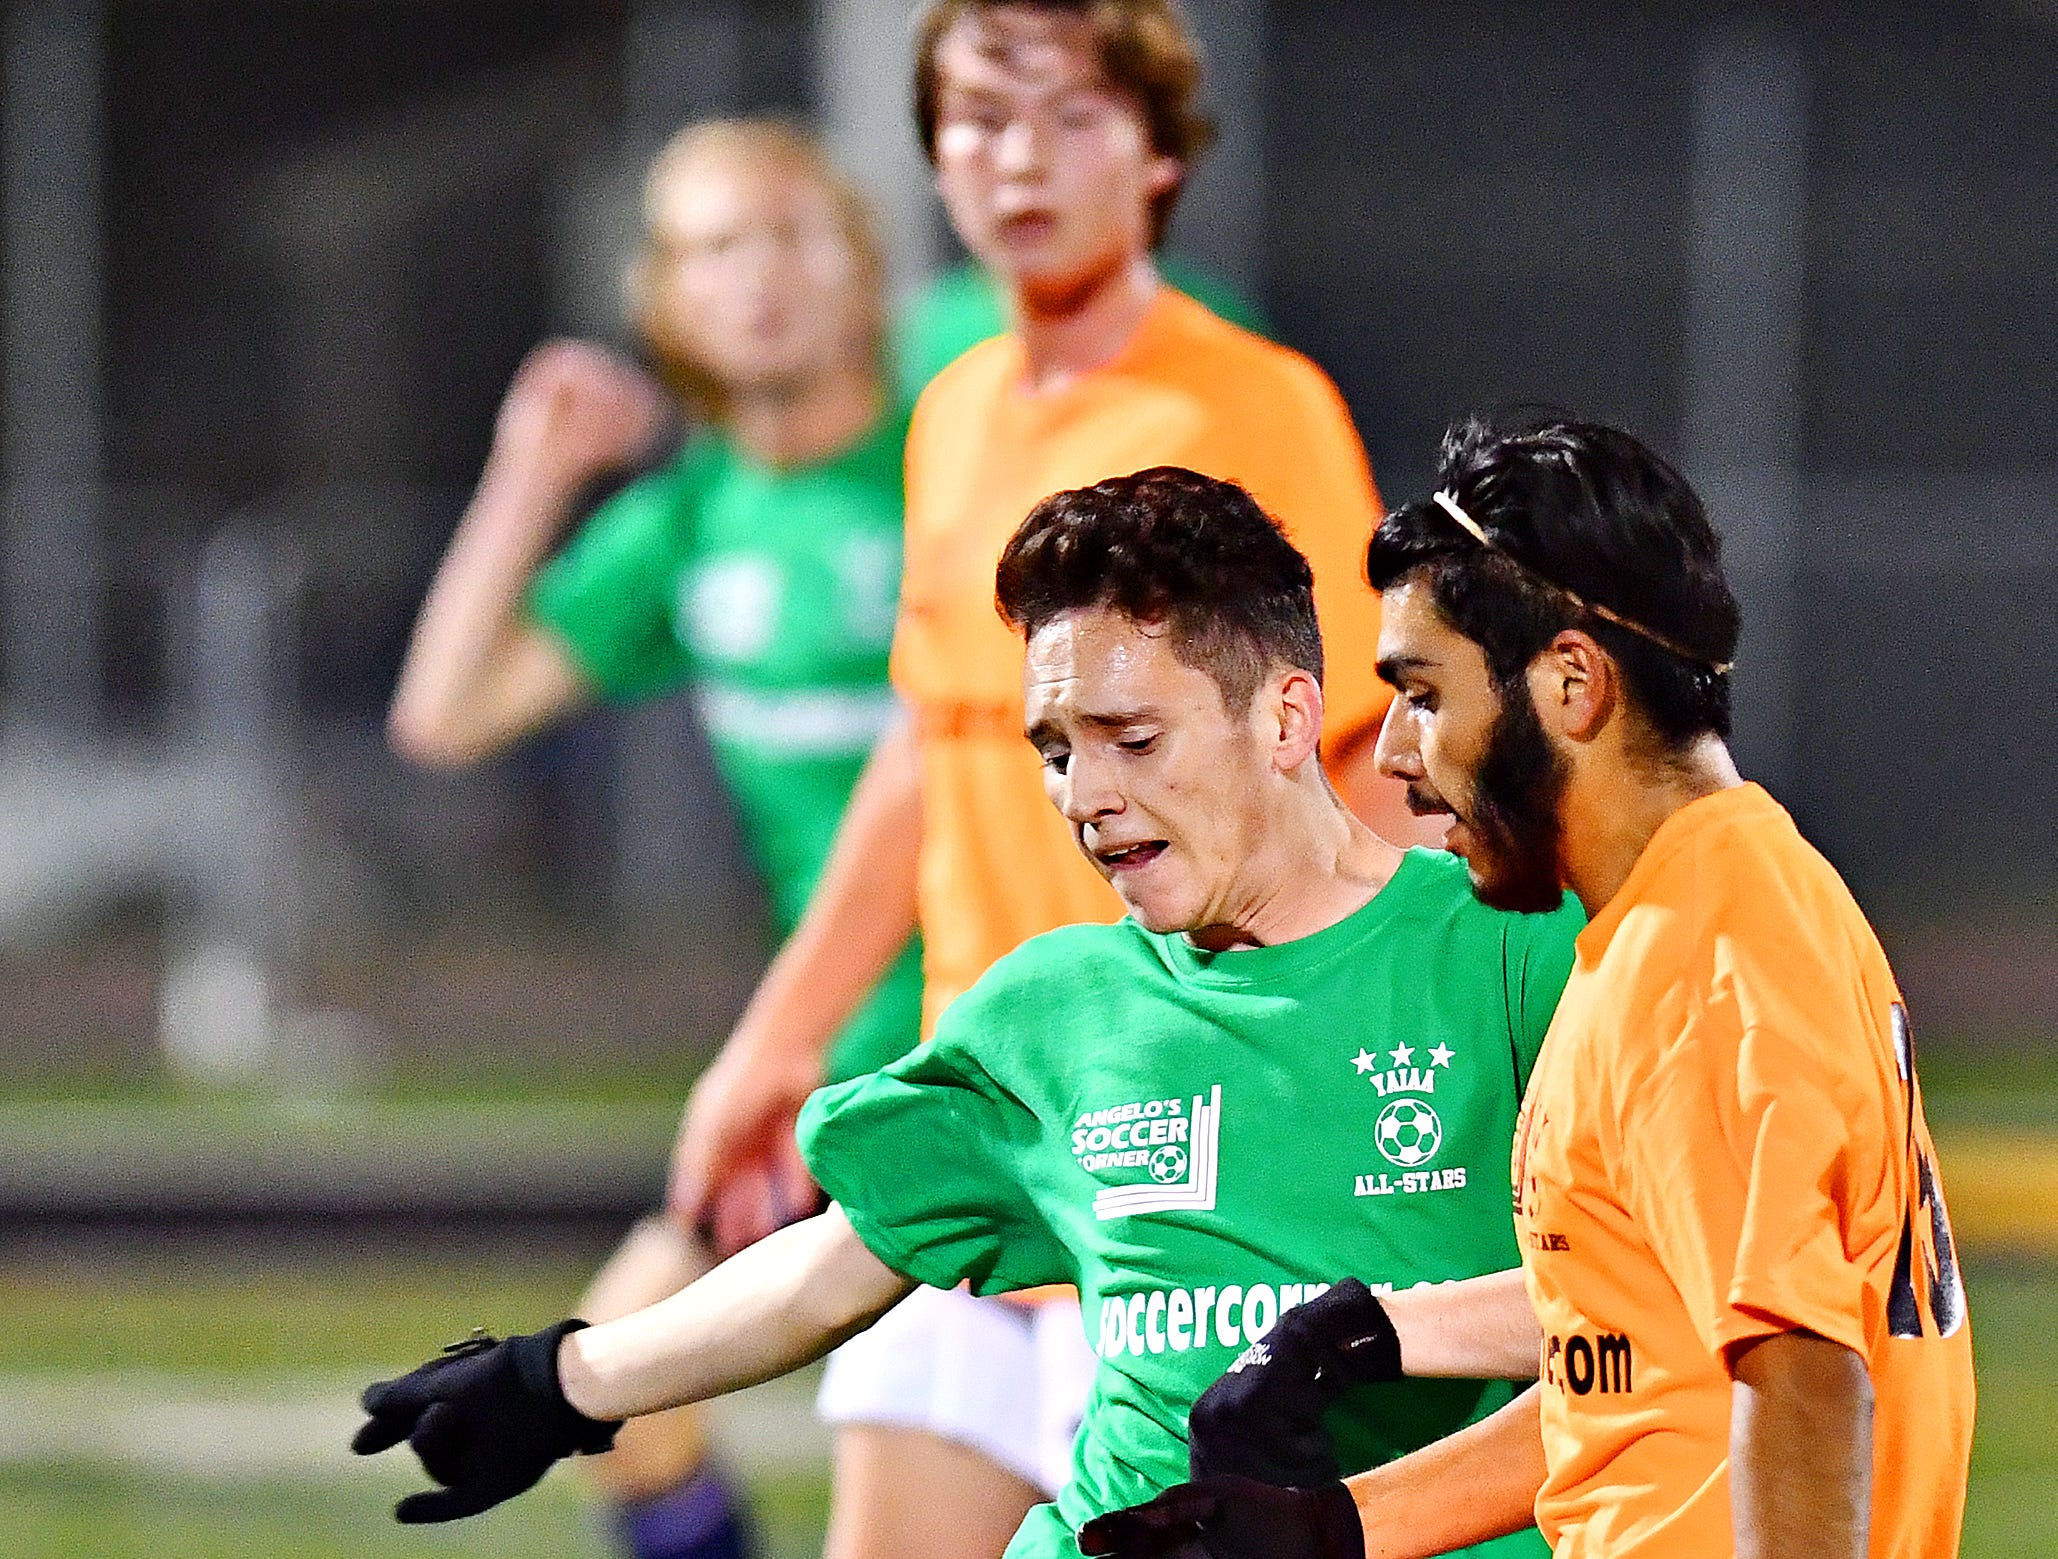 Fairfield's Patrick Pruy, left, and Biglerville's Jorge Acevado compete for control of the ball during YAIAA Boys' Soccer Senior All Star Game action at Horn Field in Red Lion, Wednesday, Nov. 7, 2018. Dawn J. Sagert photo